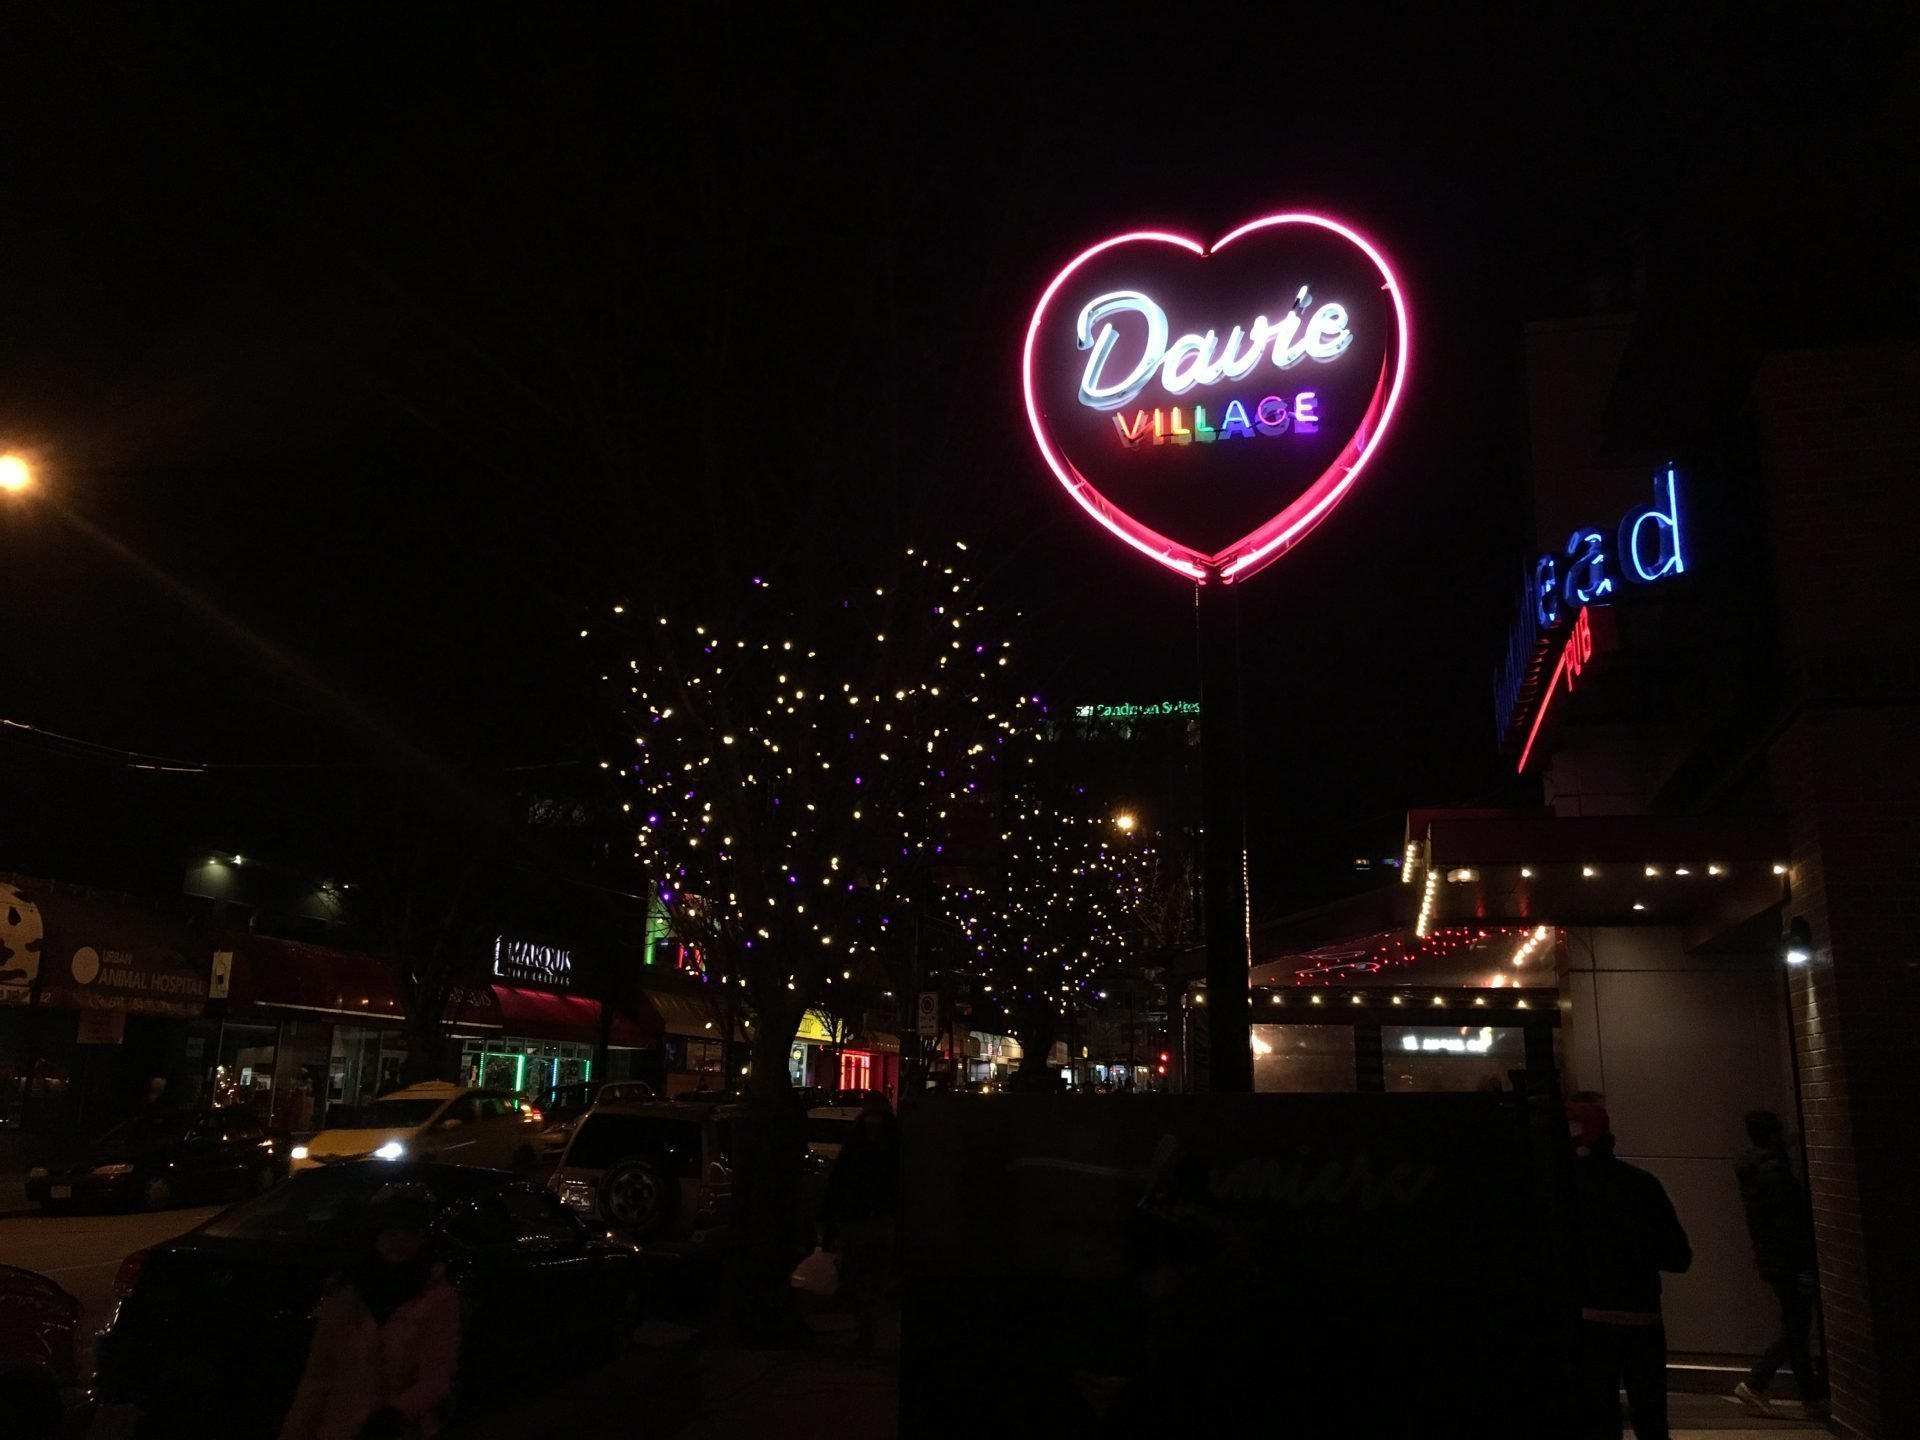 'Heart of Davie Village' neon sign